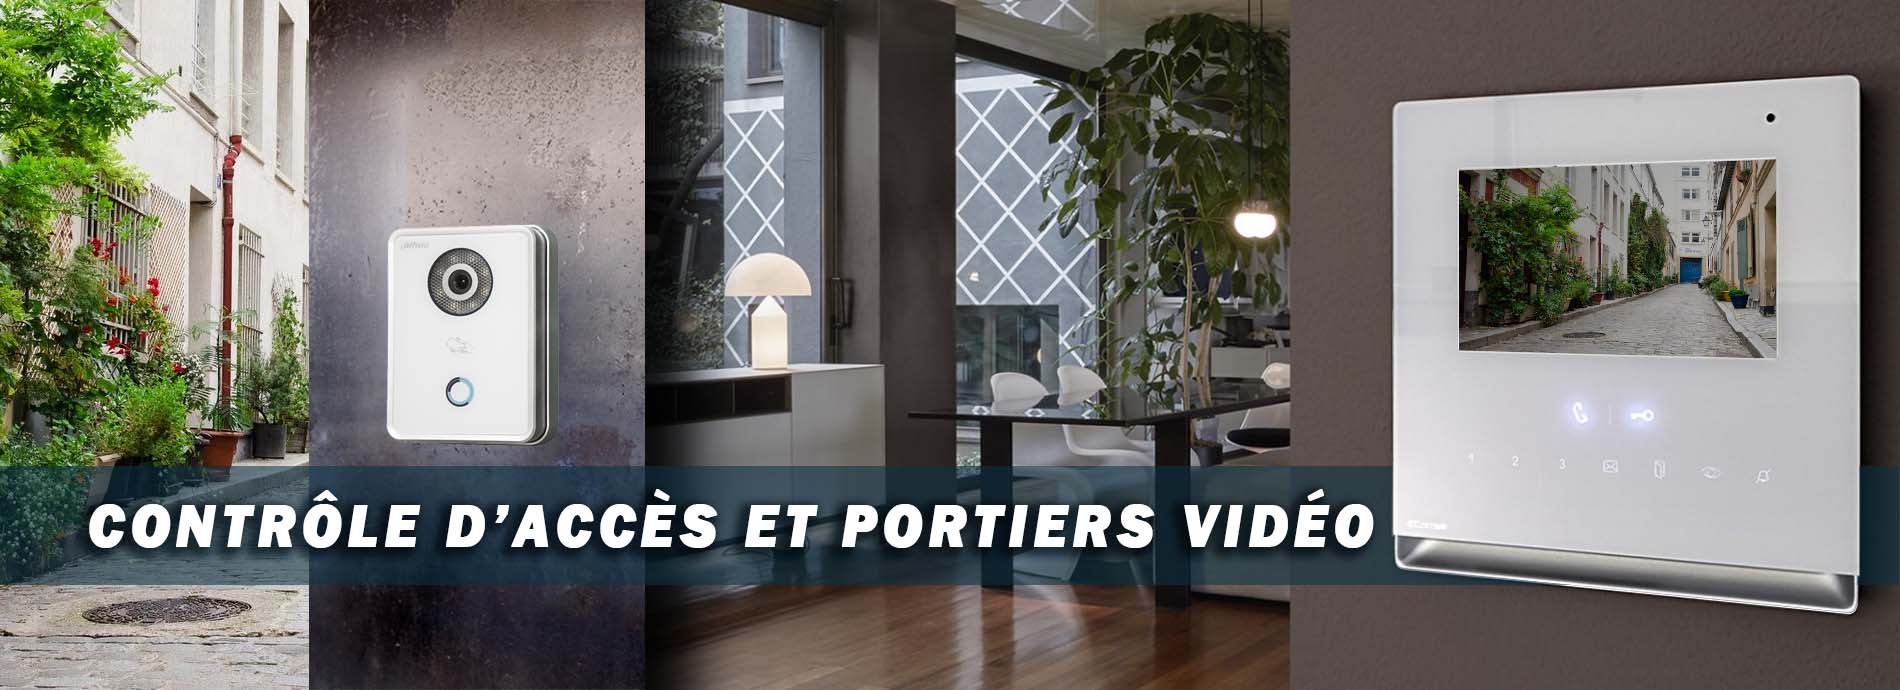 controle-acces-portiers-video-slide-hp